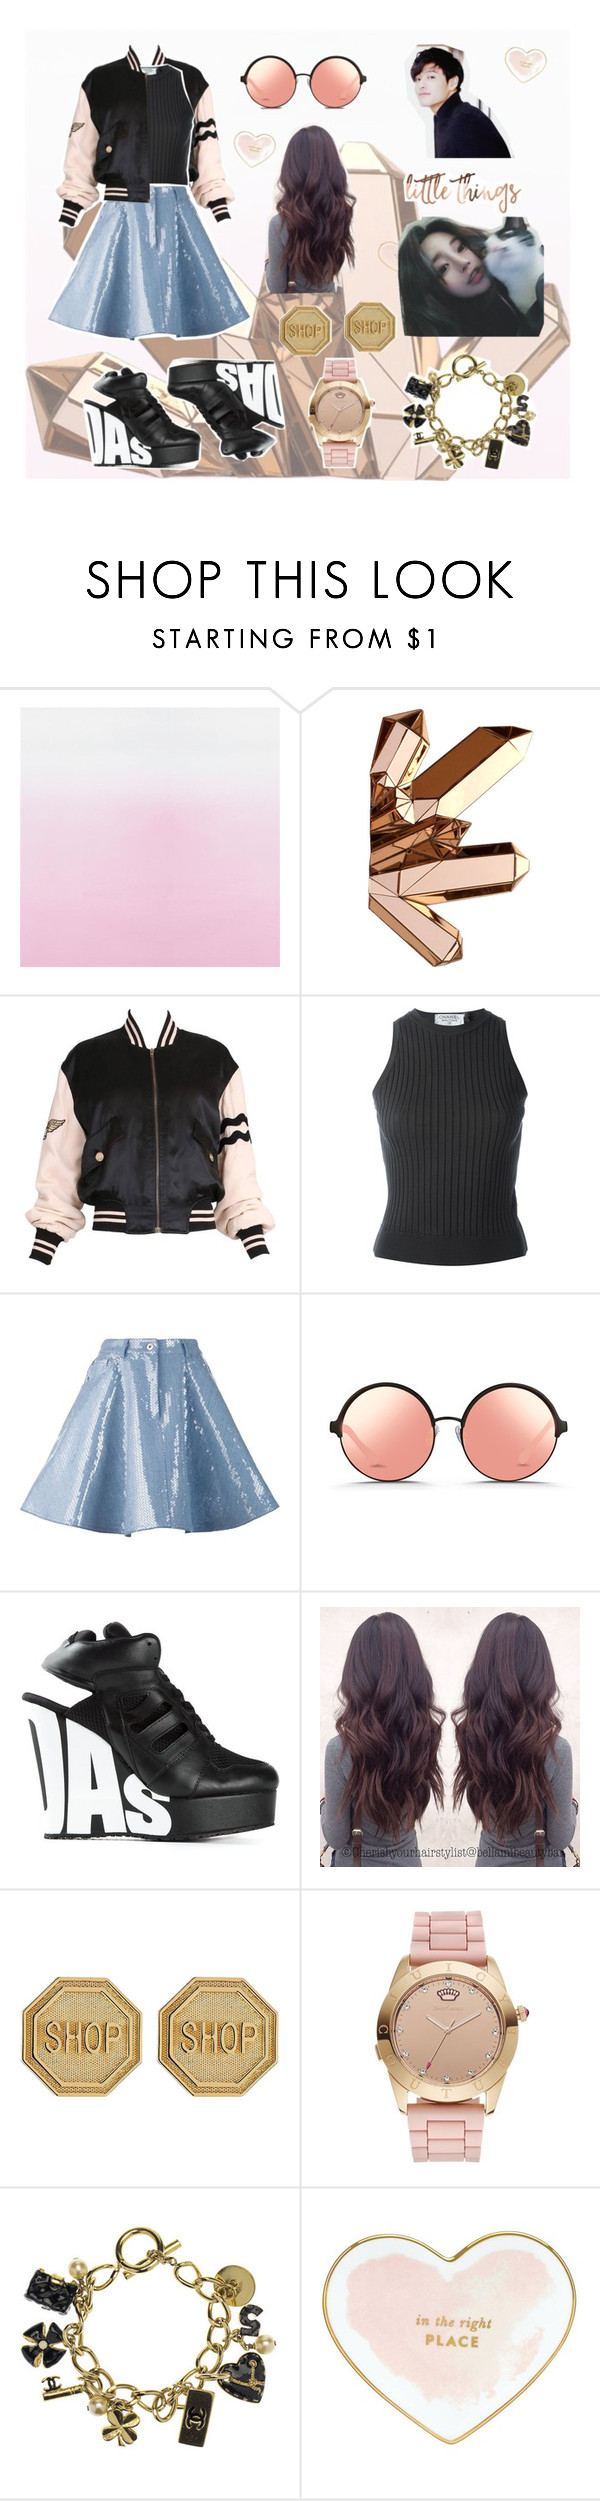 """""""decent meeting  { heart, sarra y. }"""" by raudhahshahrom ❤ liked on Polyvore featuring Moschino, Chanel, Matthew Williamson, adidas Originals, Juicy Couture and Kate Spade"""